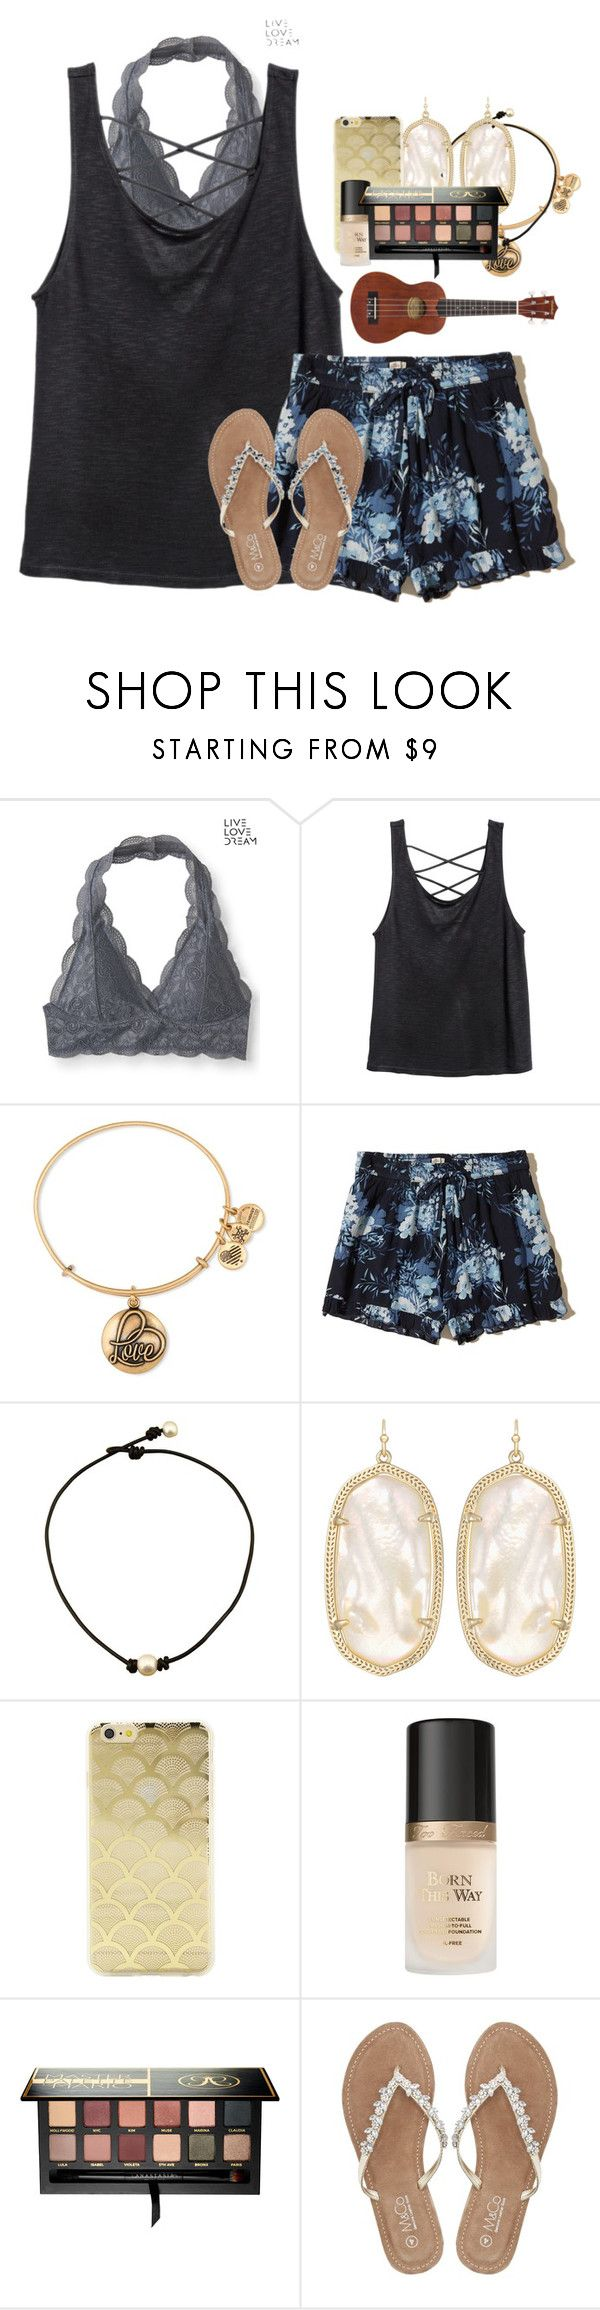 """""""Just keep Swimming"""" by labures on Polyvore featuring Aéropostale, Alex and Ani, Hollister Co., Kendra Scott, Sonix, Too Faced Cosmetics, Anastasia Beverly Hills and M&Co"""